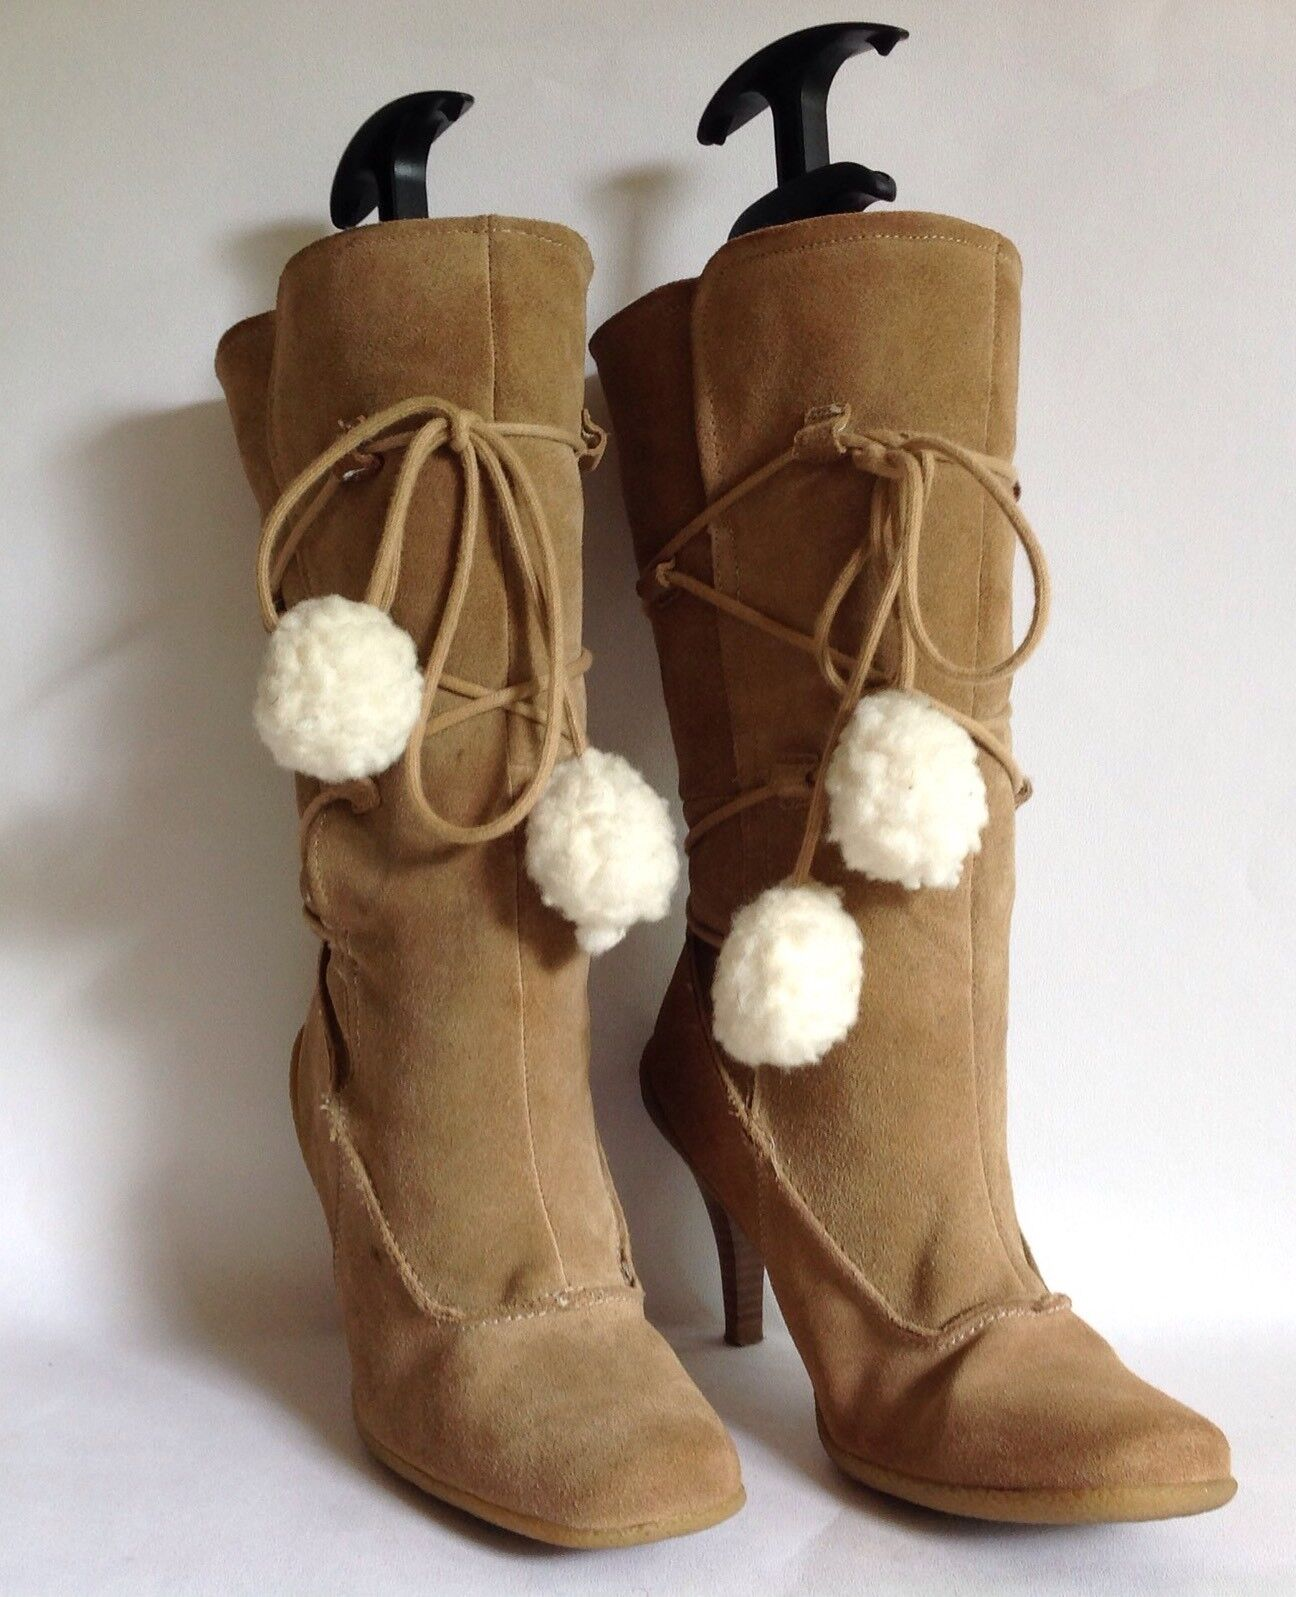 New Look Buff Suede Faux Shearling Lined 4.25  Heel 3 4 Winter Boot UK 4 EU 37